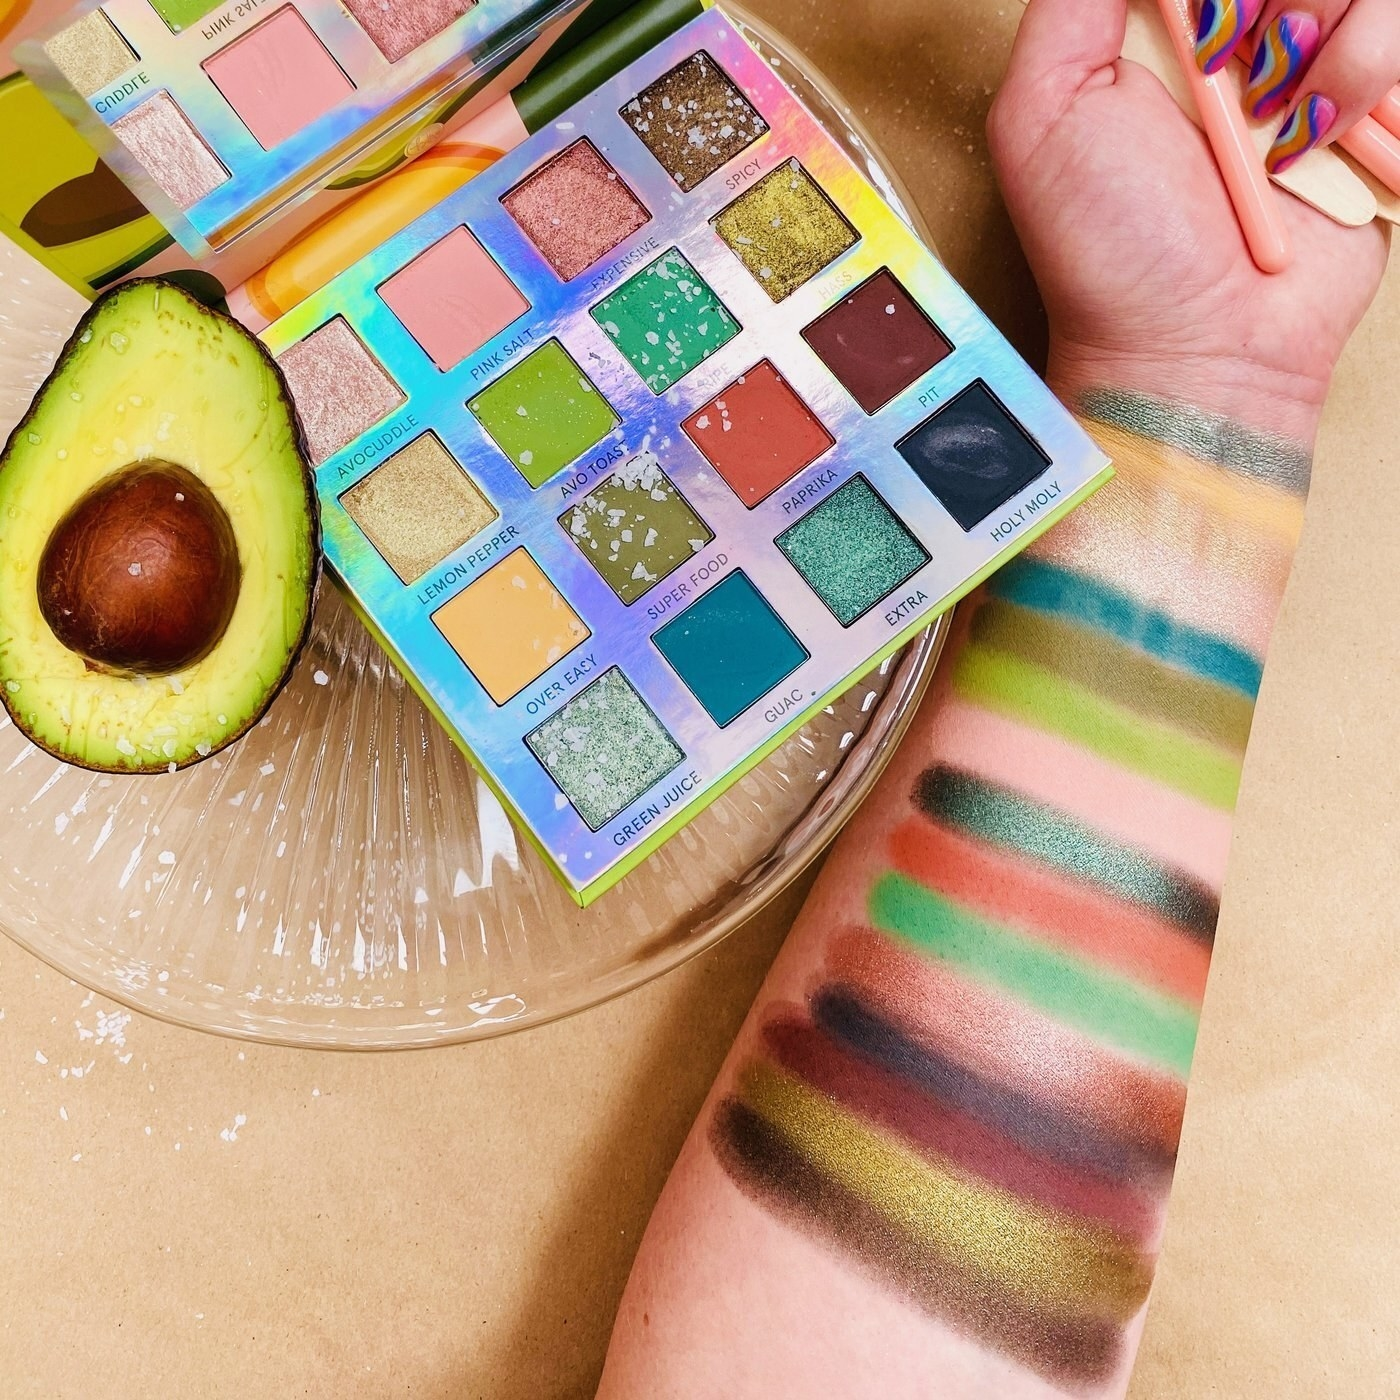 A 16-shade makeup palette in several different shades of yellow, blue, green, and red, some with shimmer